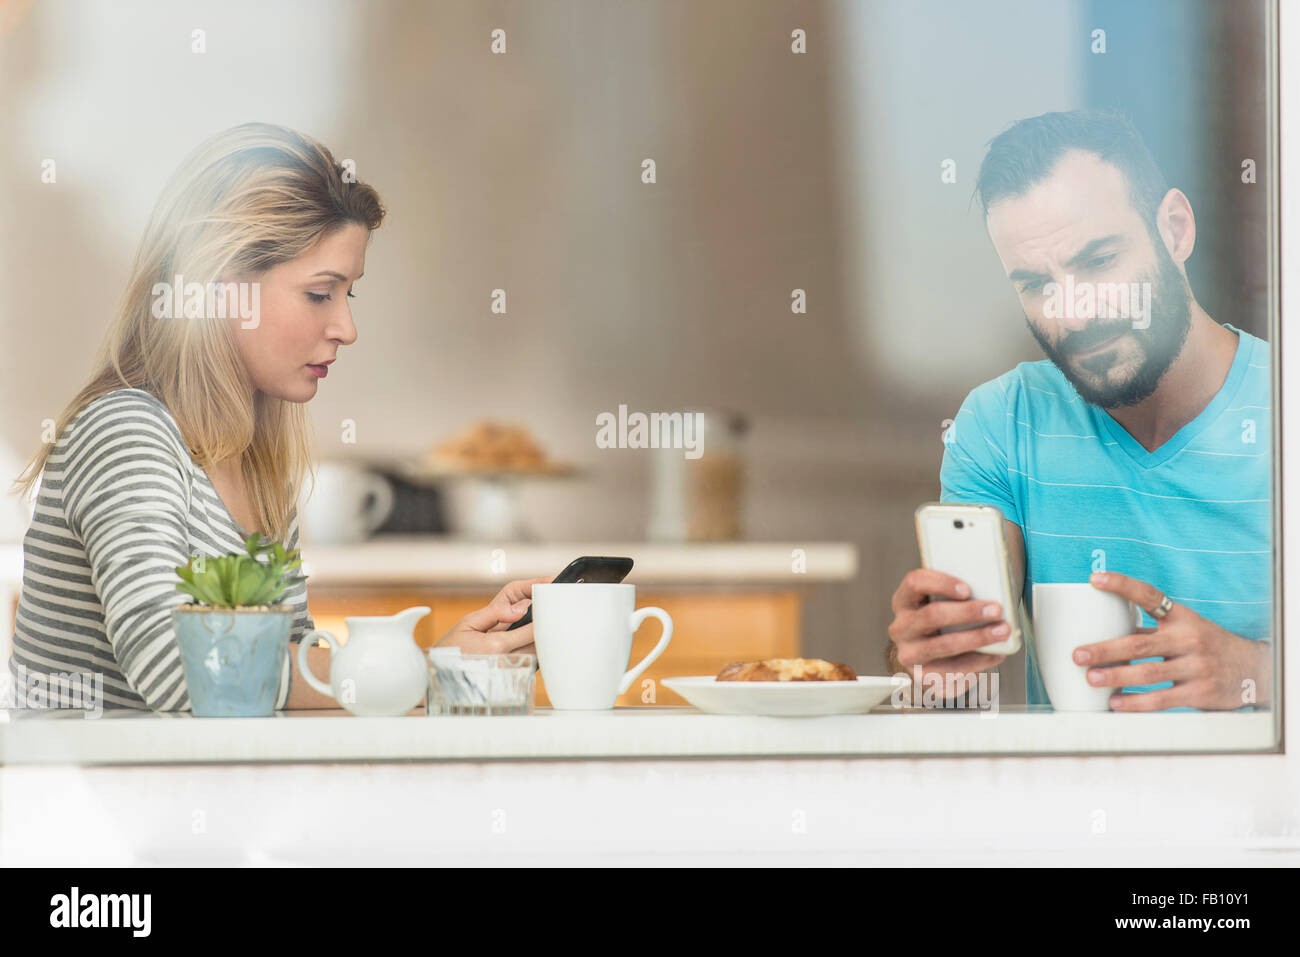 Woman and man using telephones - Stock Image